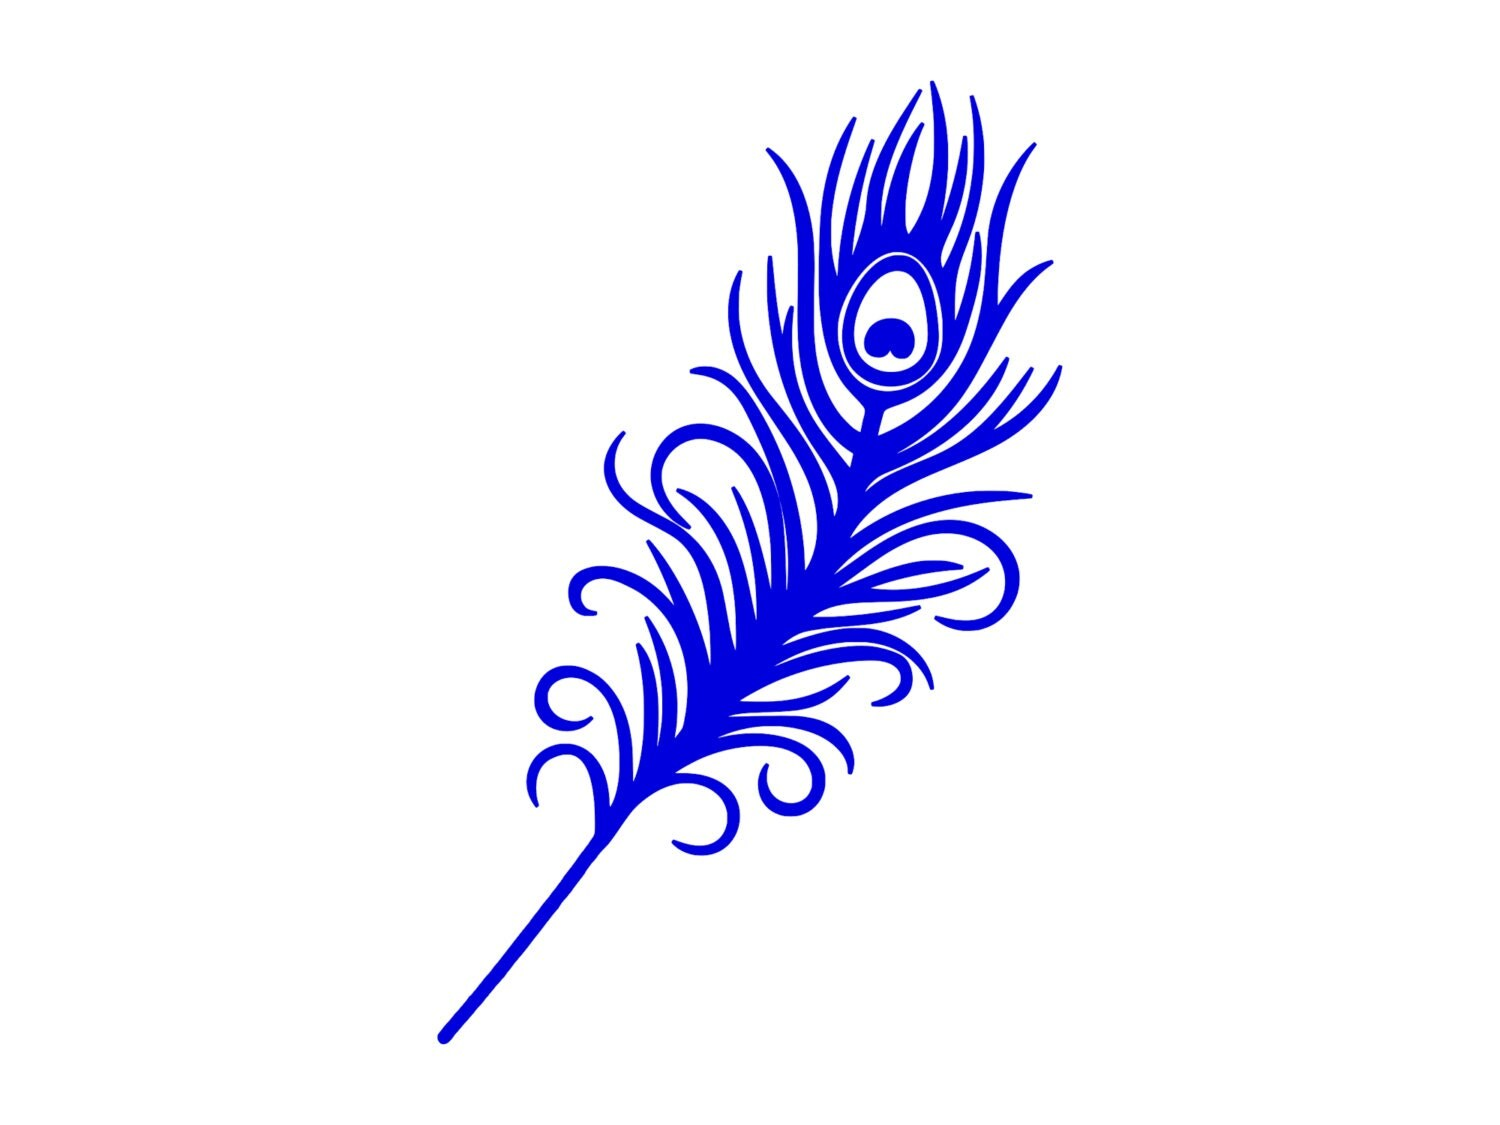 peacock feather decal peacock feather sticker outdoor vinyl peacock feathers wall decal pattern large vinyl art set by